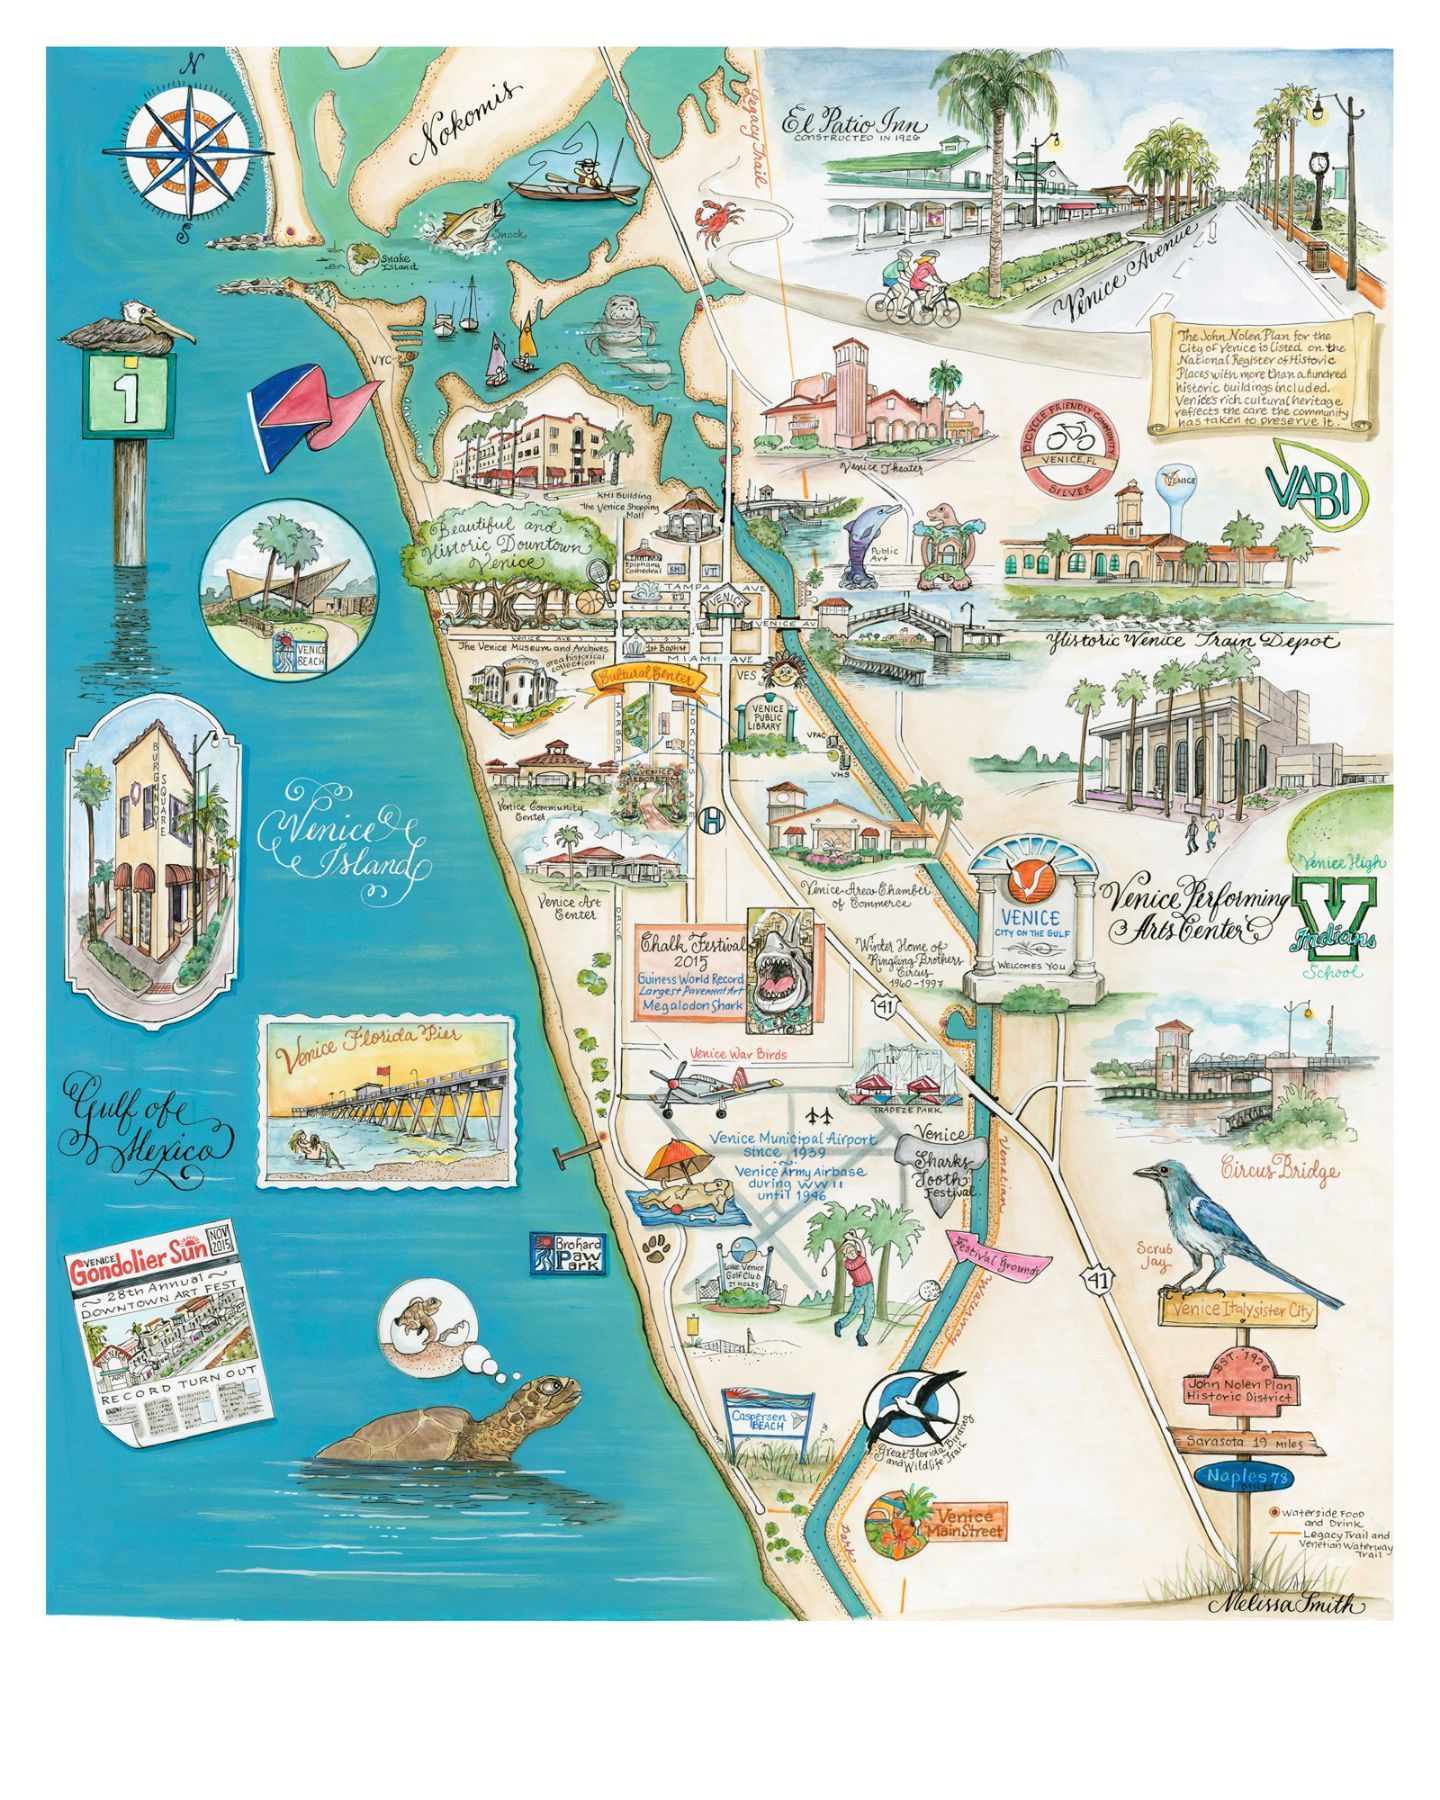 Venice, Florida Map - This Map Is One Of The Prettiest Maps I Have - Where Is Watercolor Florida On A Map